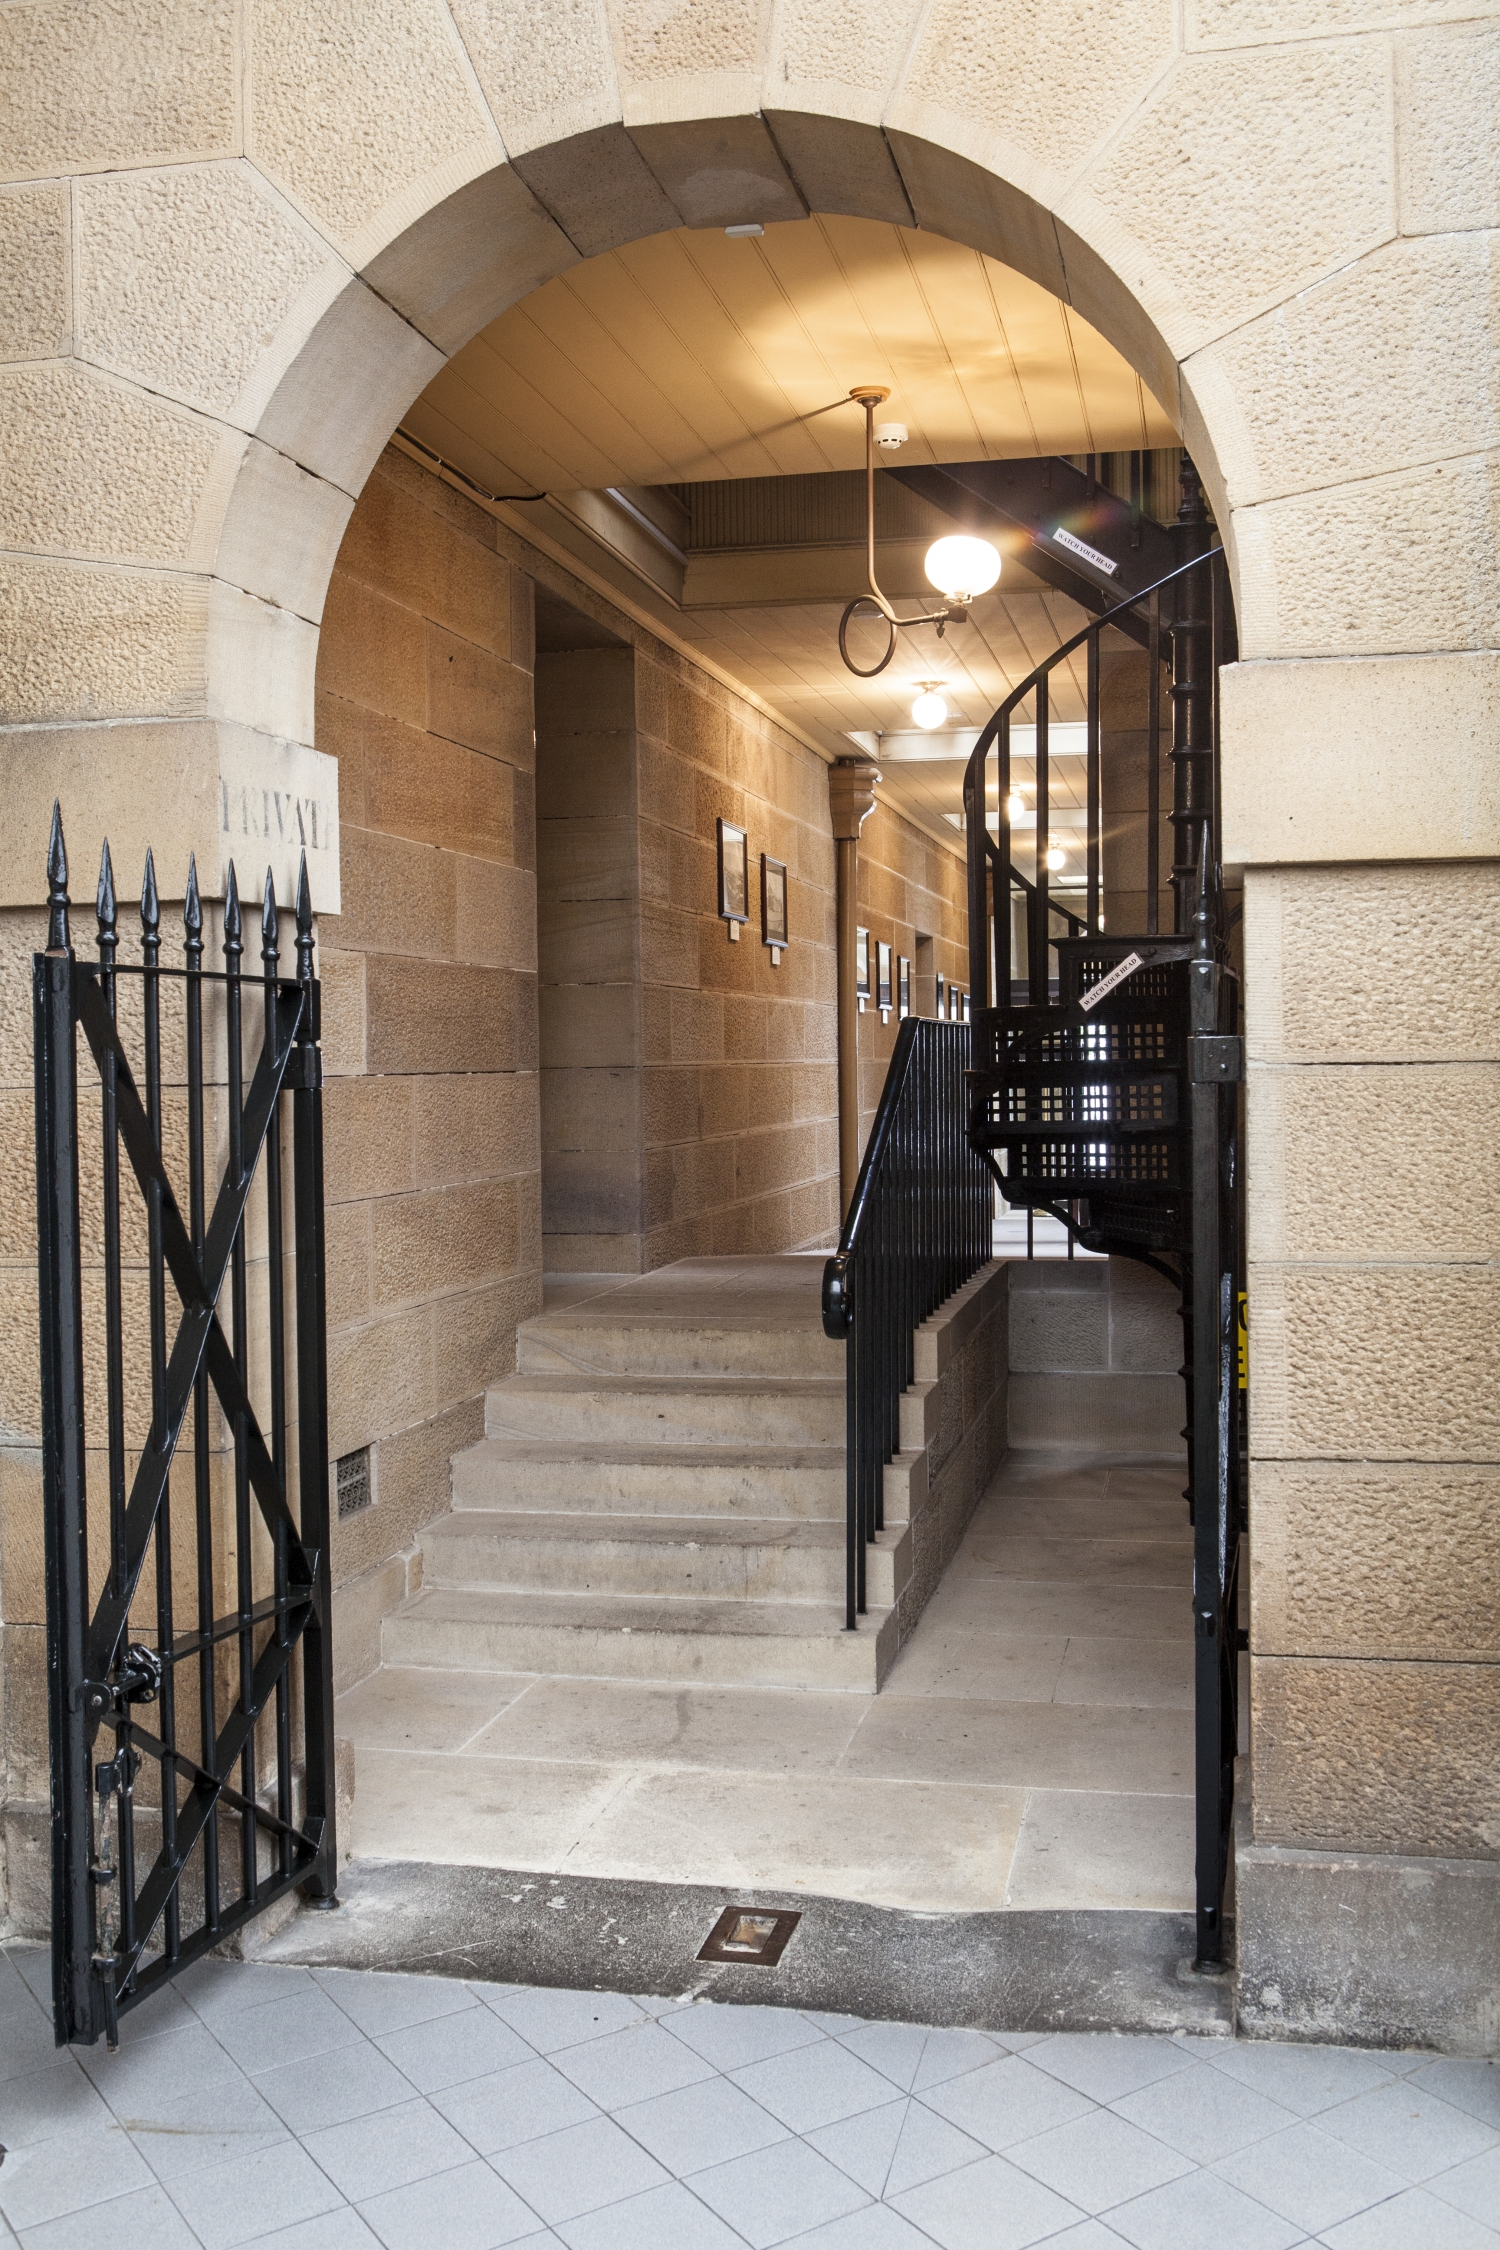 Black-painted metal gate and archway leading into sandstone corridor with steps and spiral staircase visible.